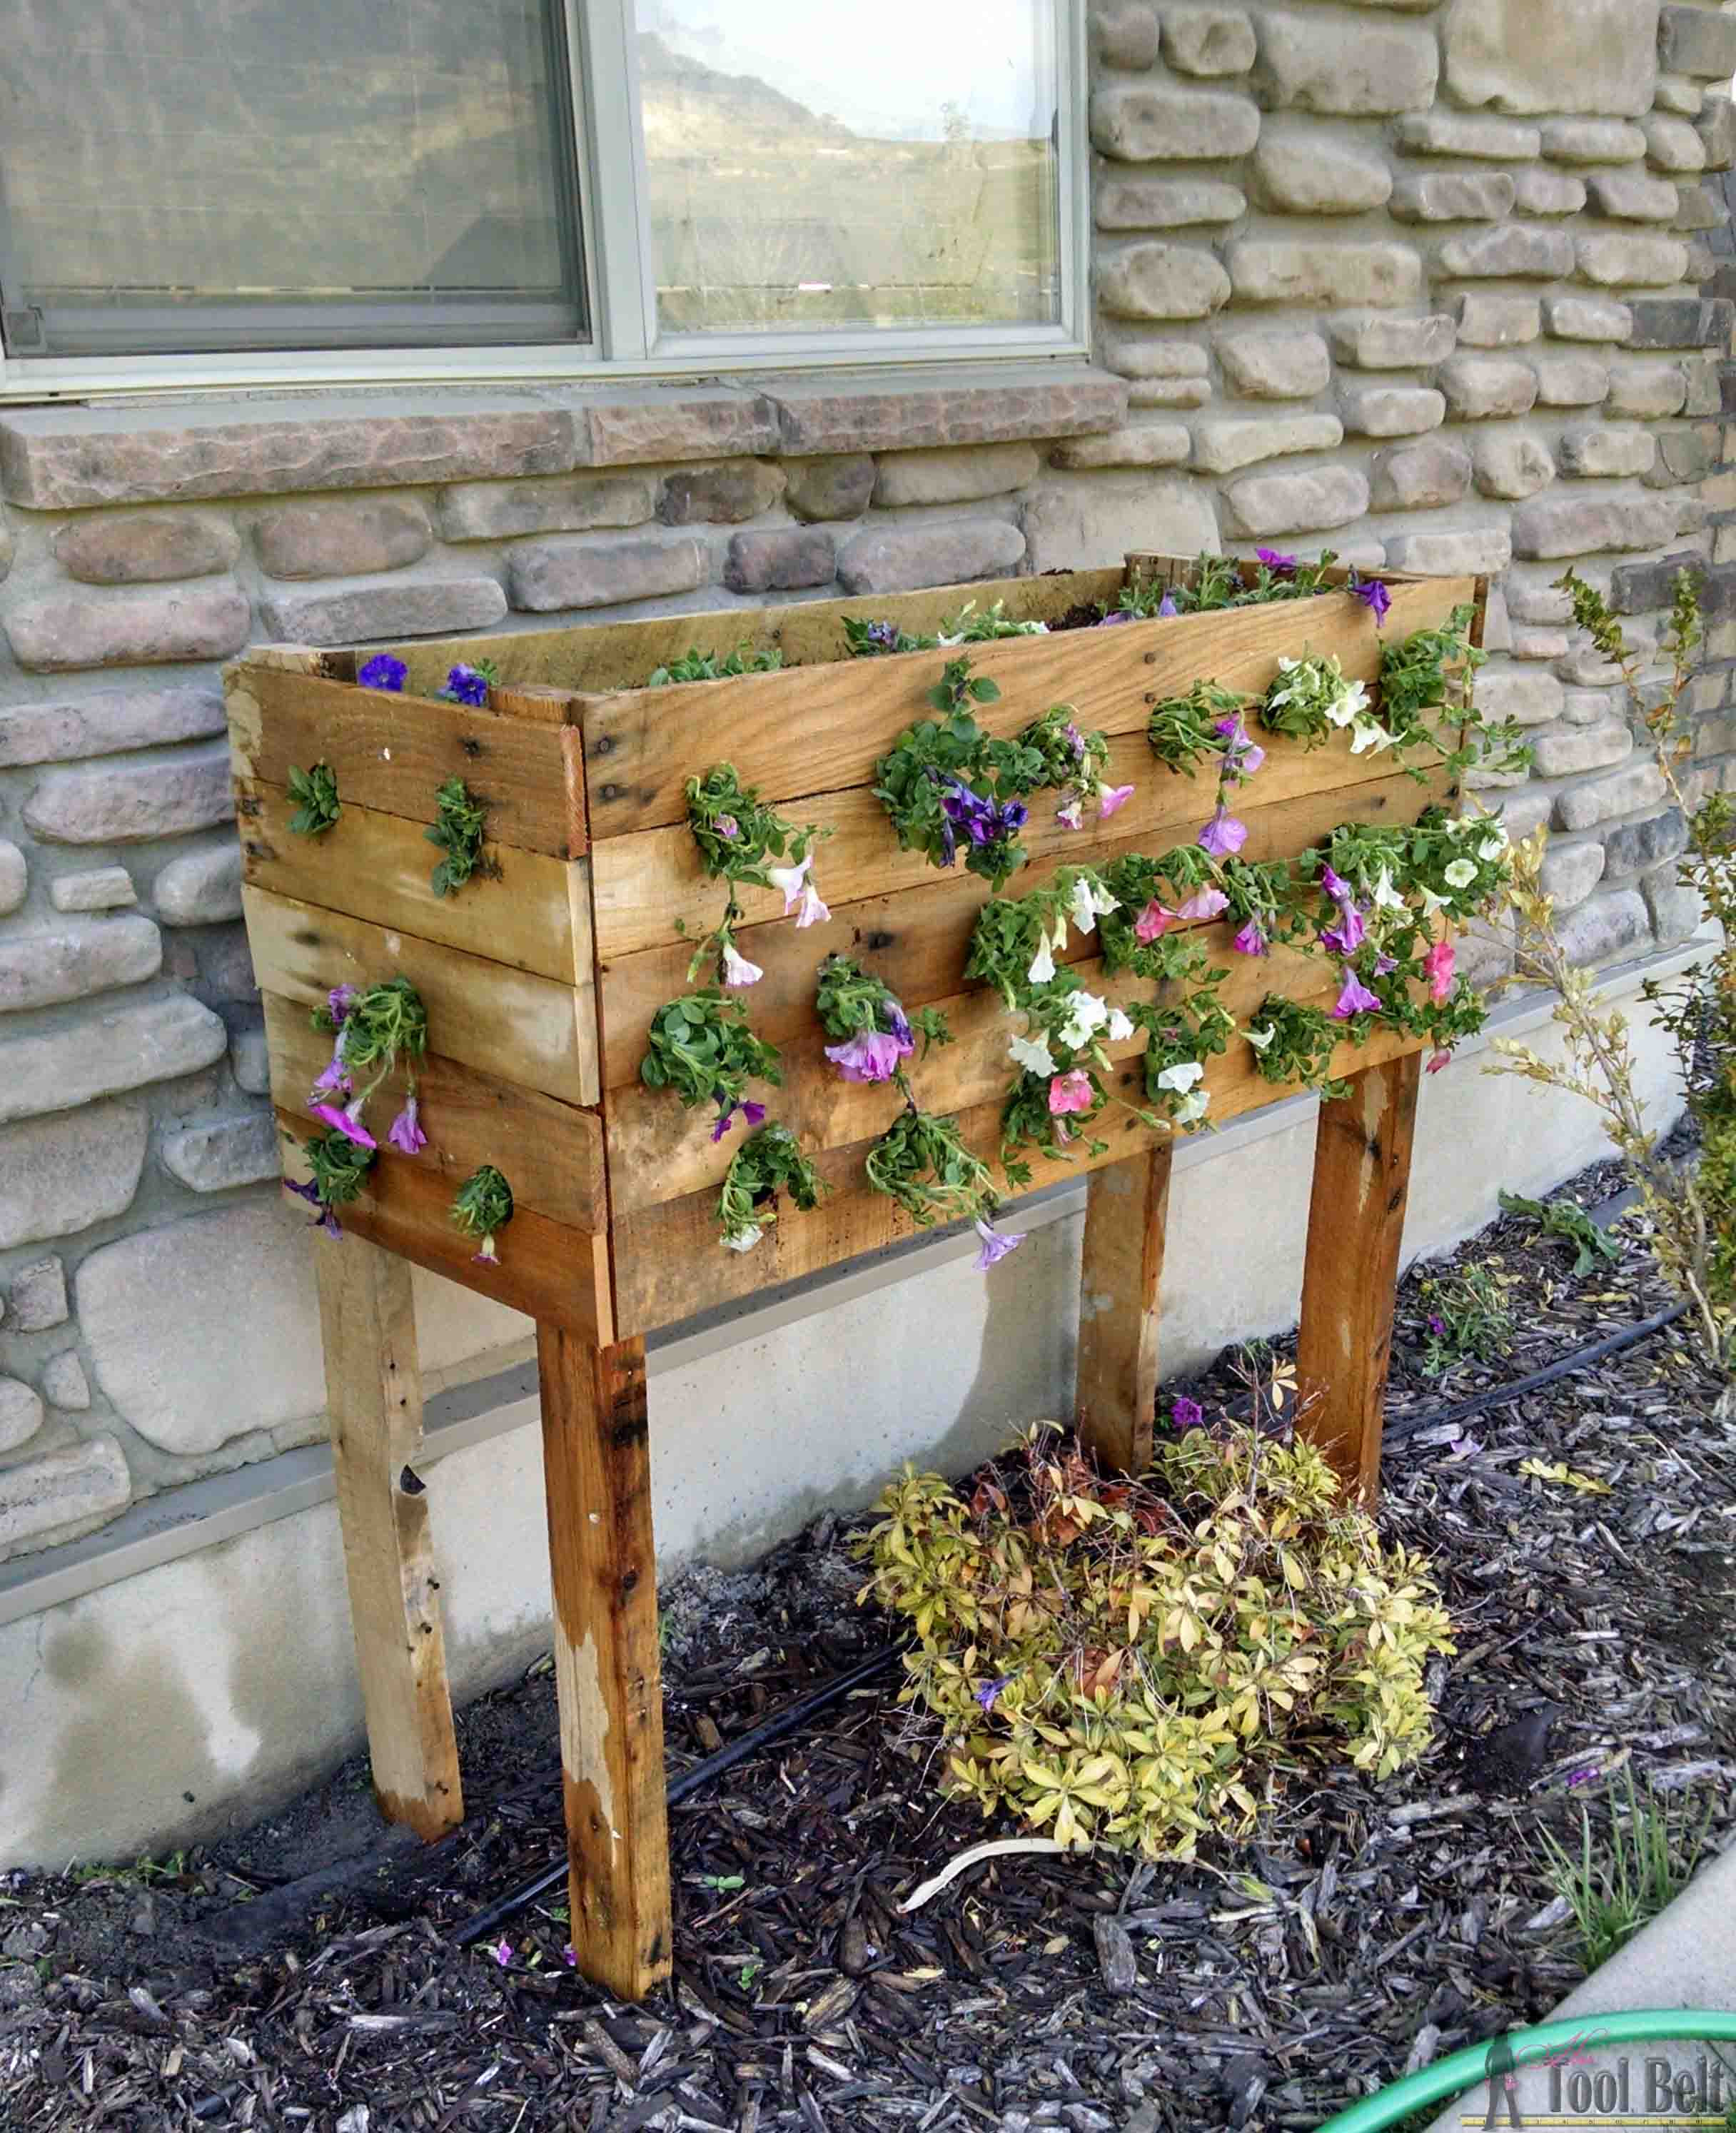 Check out these flowers - DIY pallet planter box for those amazing cascading flower baskets.